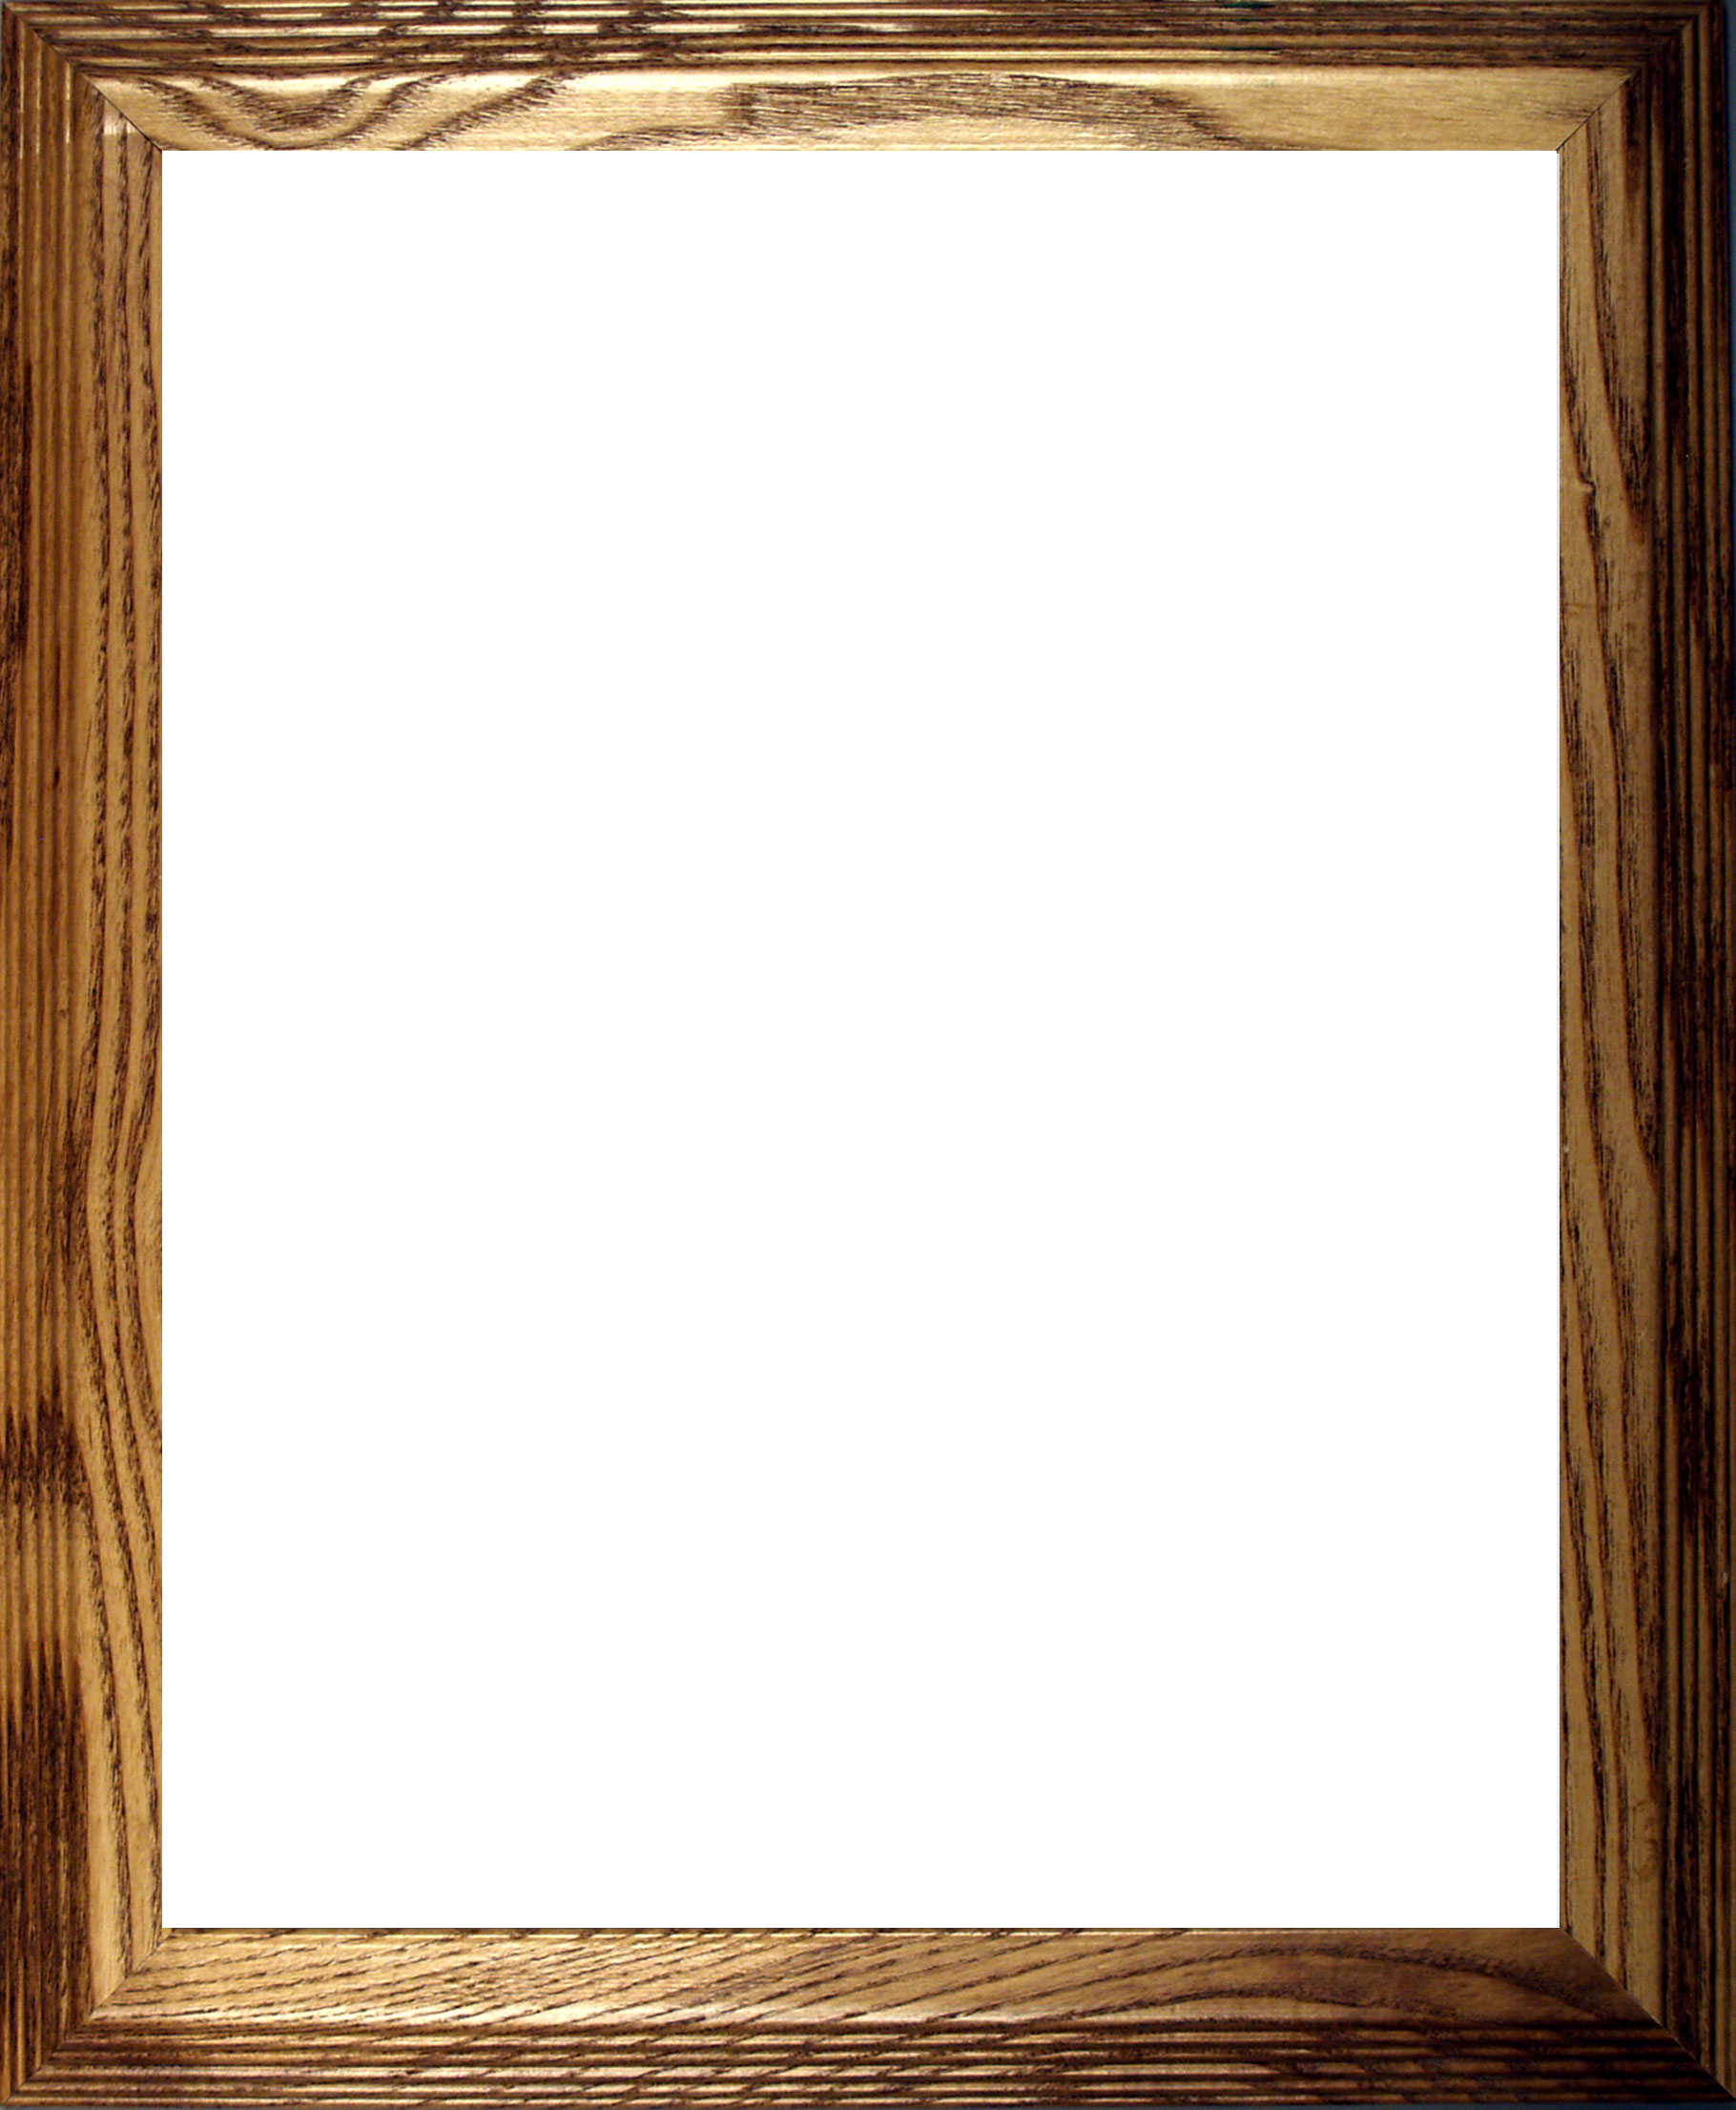 View - Englewood Natural - Openback - 8x10 - Open Back | Timeless Frames